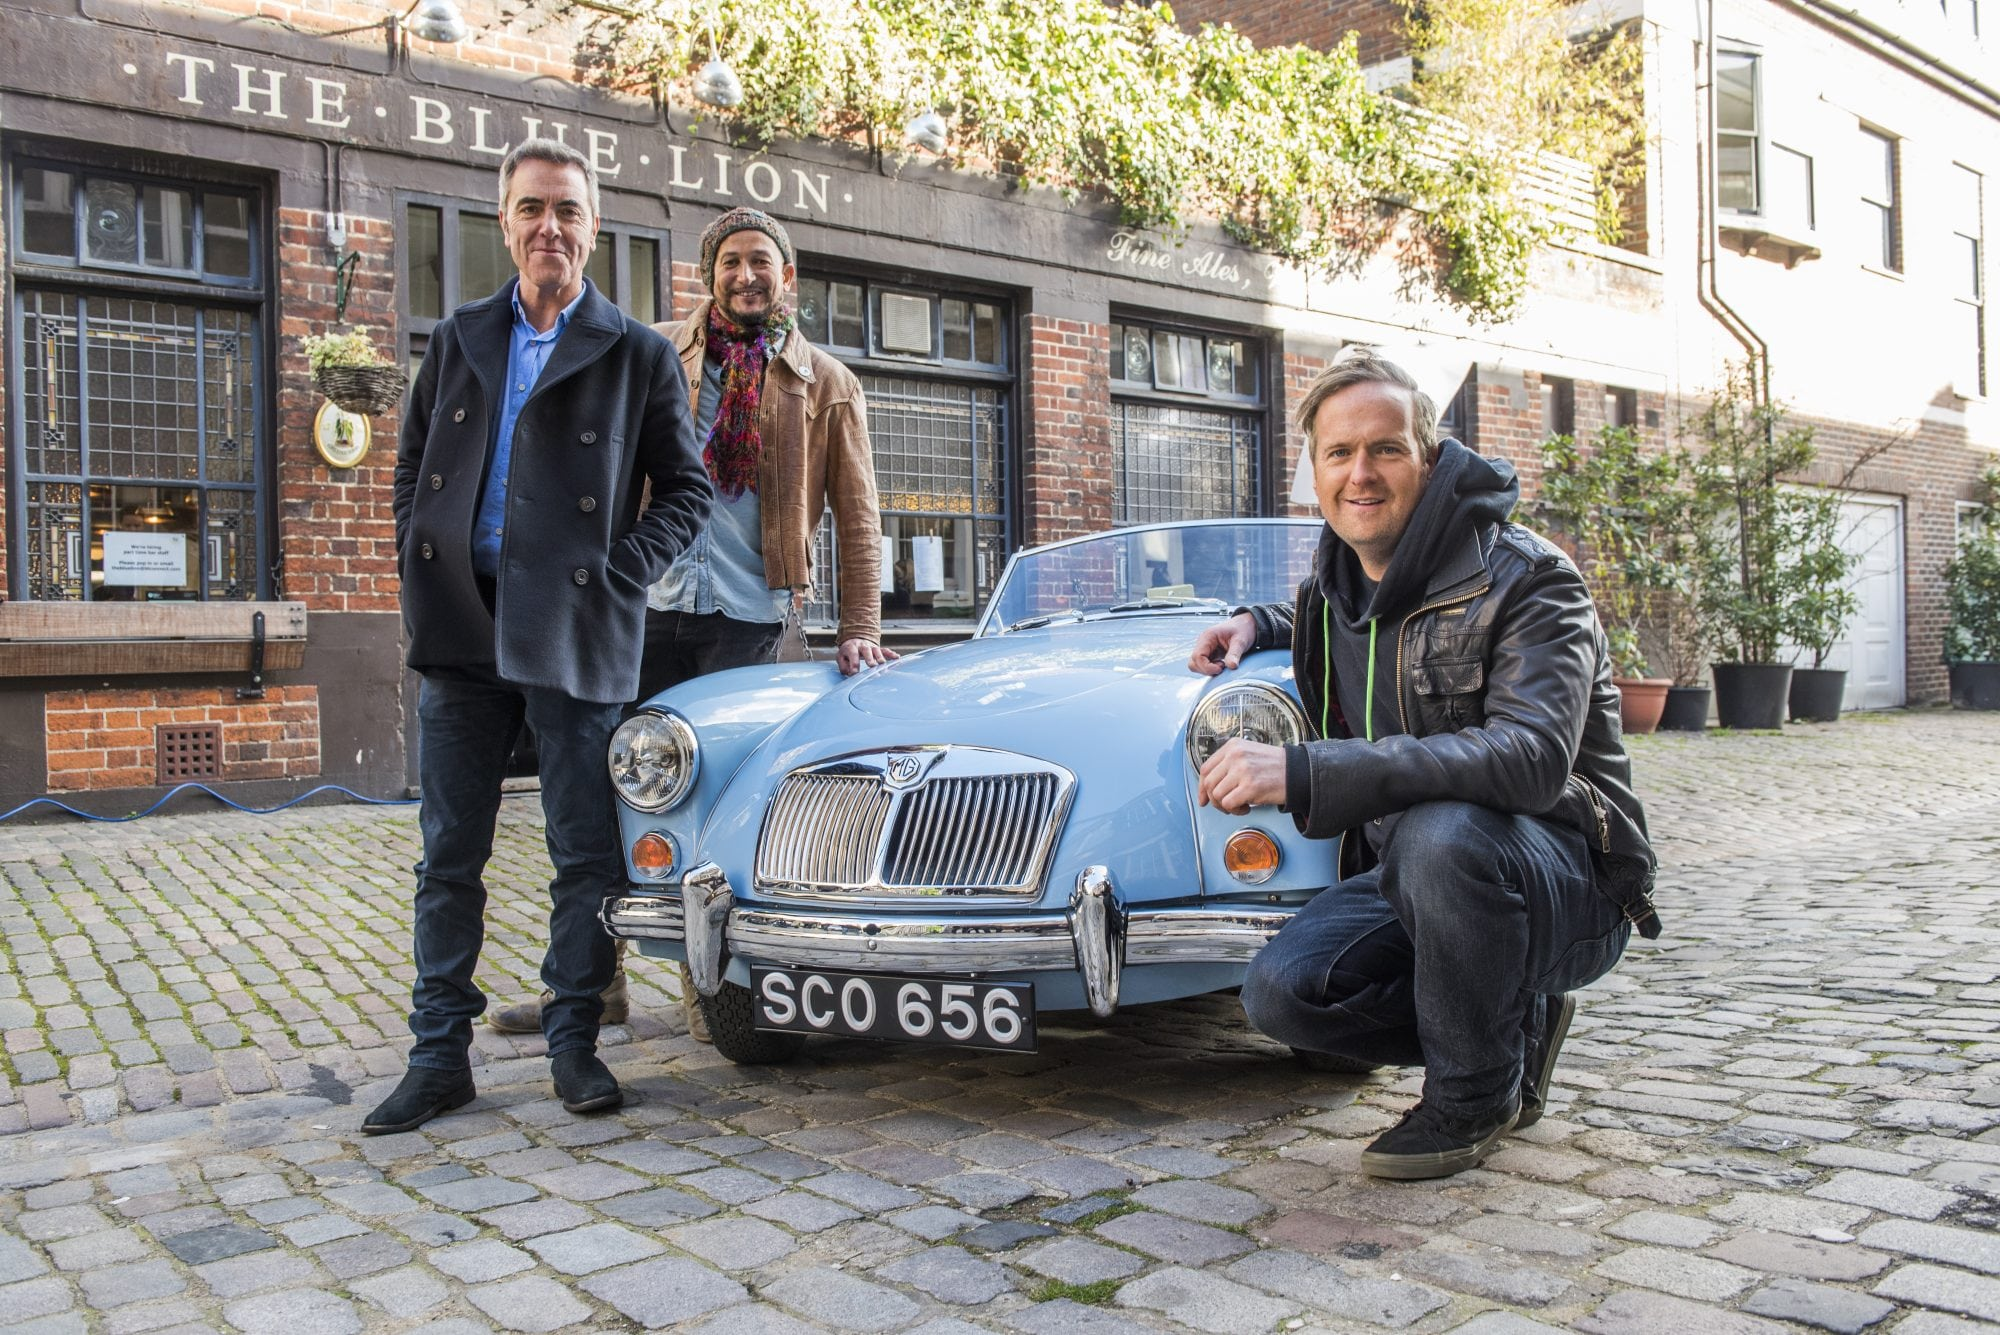 Car S O Season 6 Brand New Sixth Of The Restoration Show With Heart Featuring Mind Ing Makeoveroving Real Life Stories